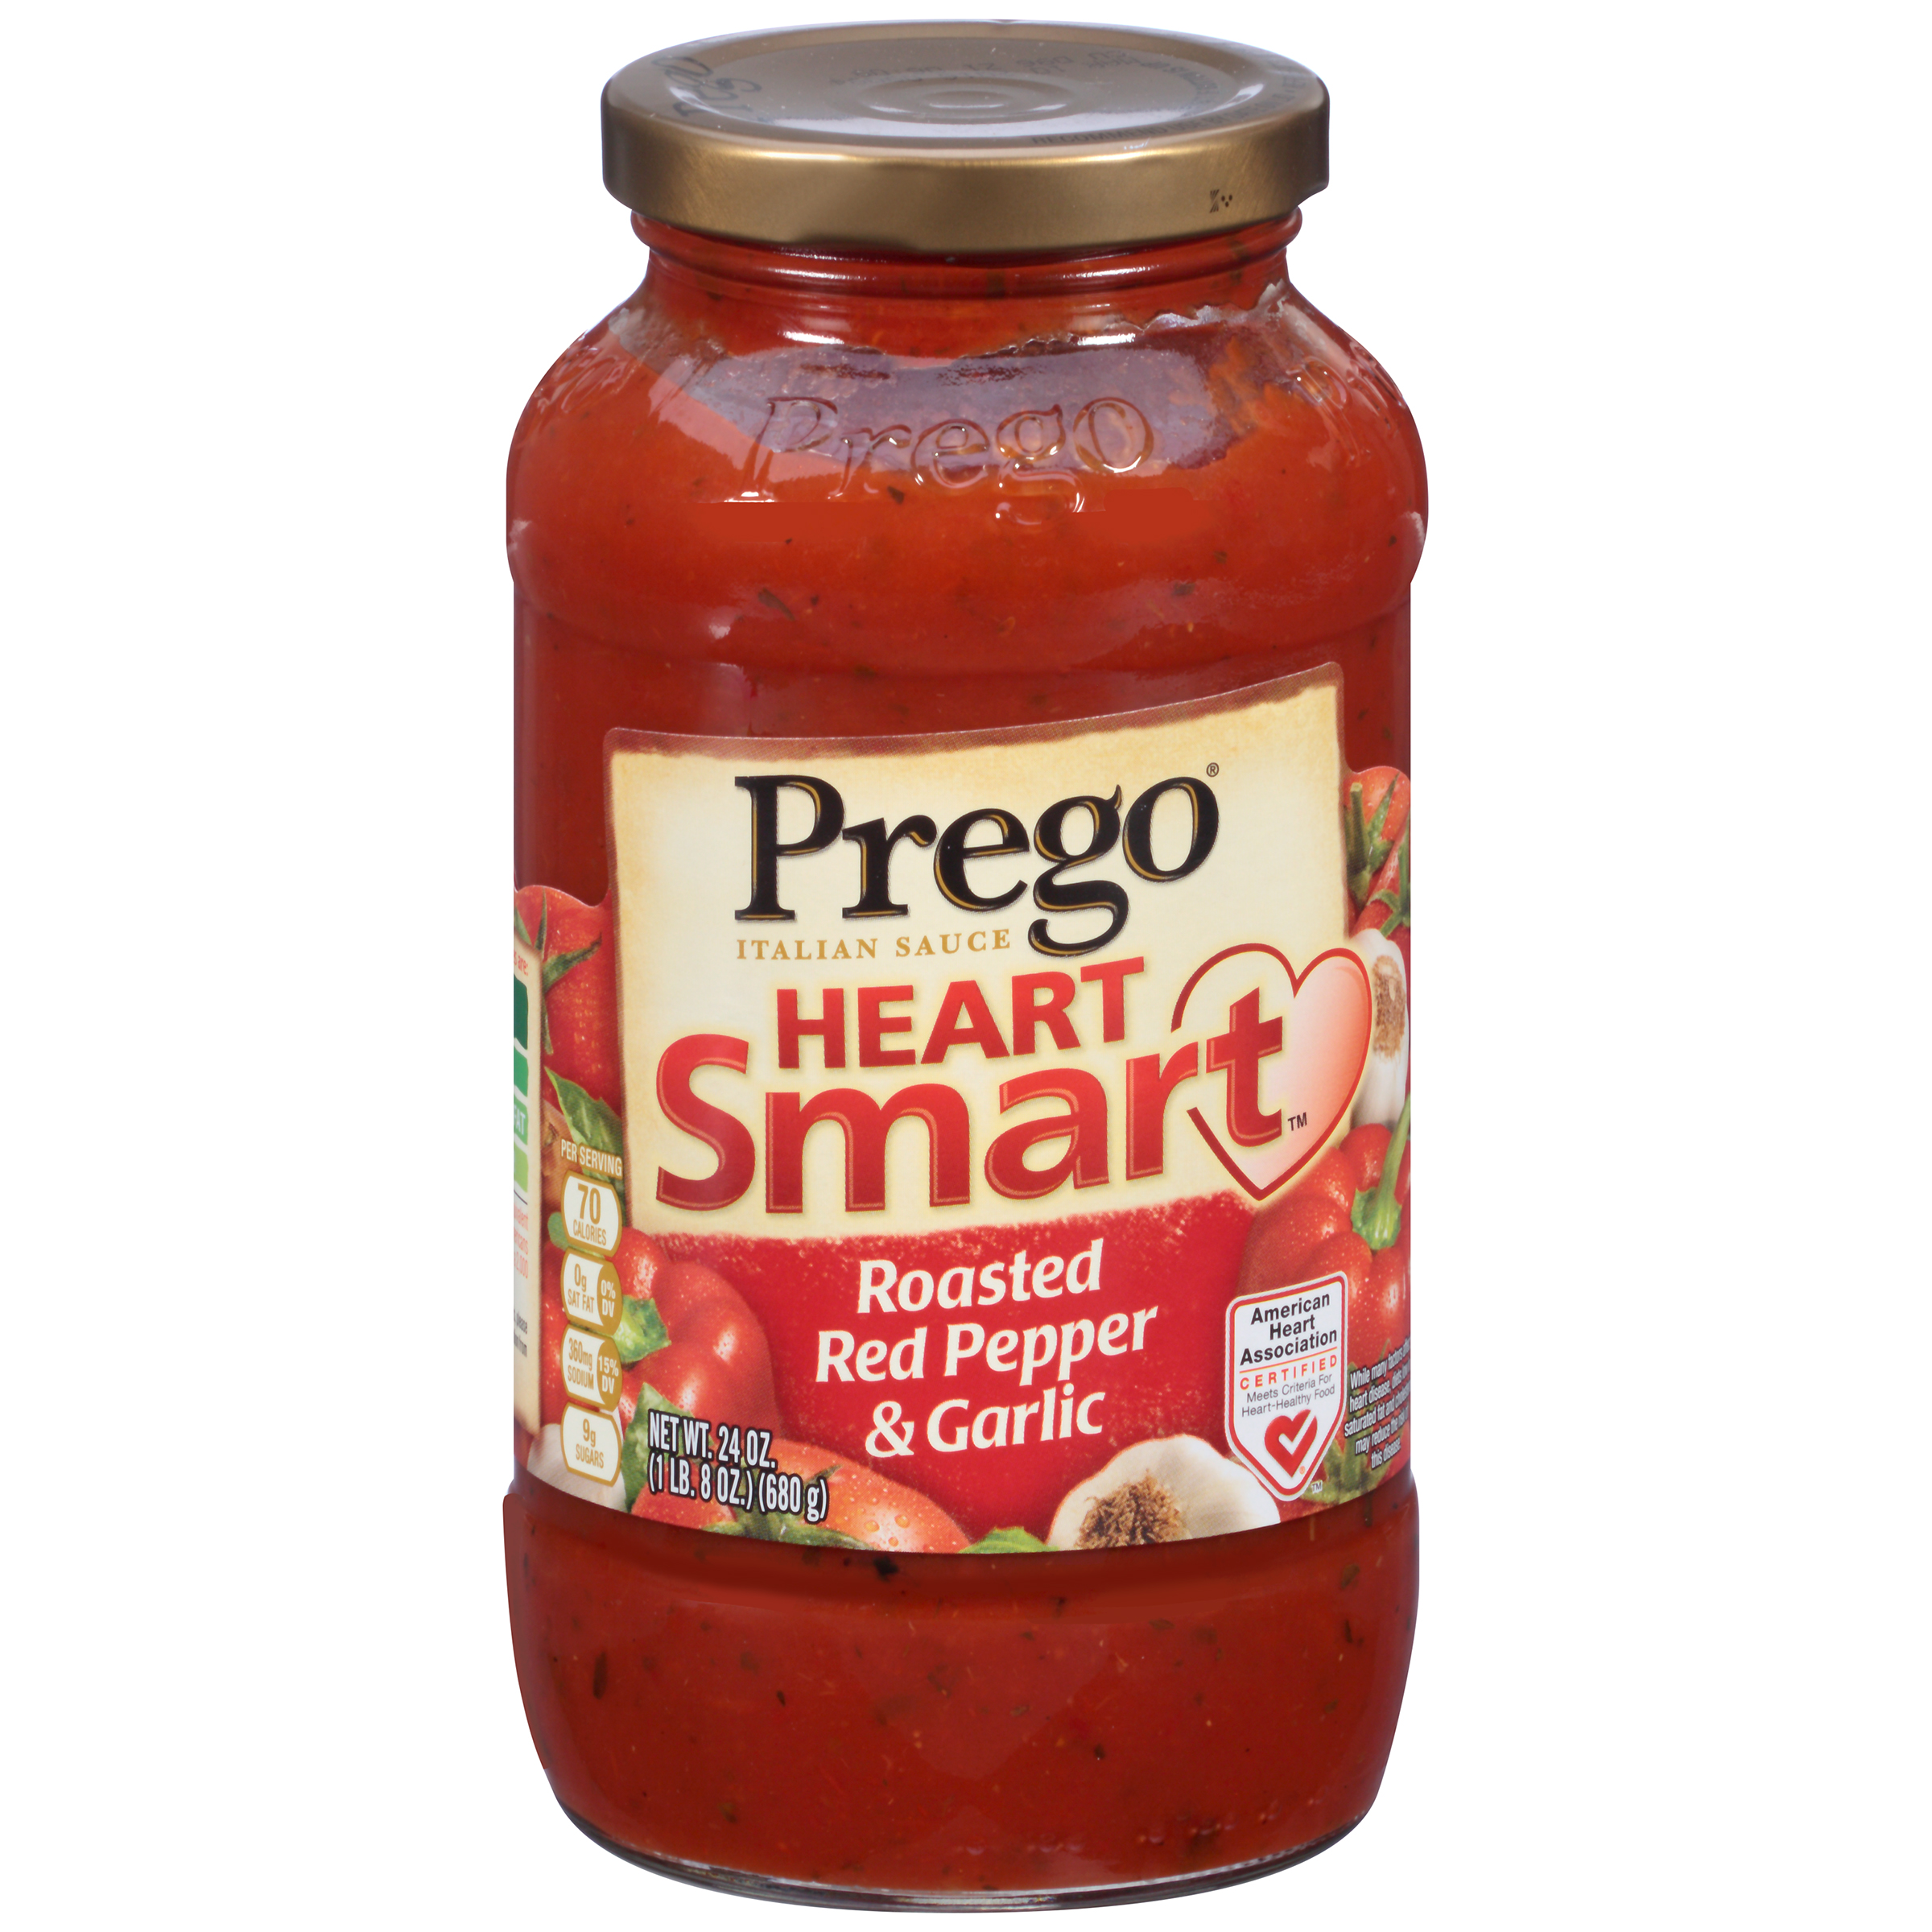 Prego Heart Smart Roasted Red Pepper & Garlic Italian Sauce 24oz